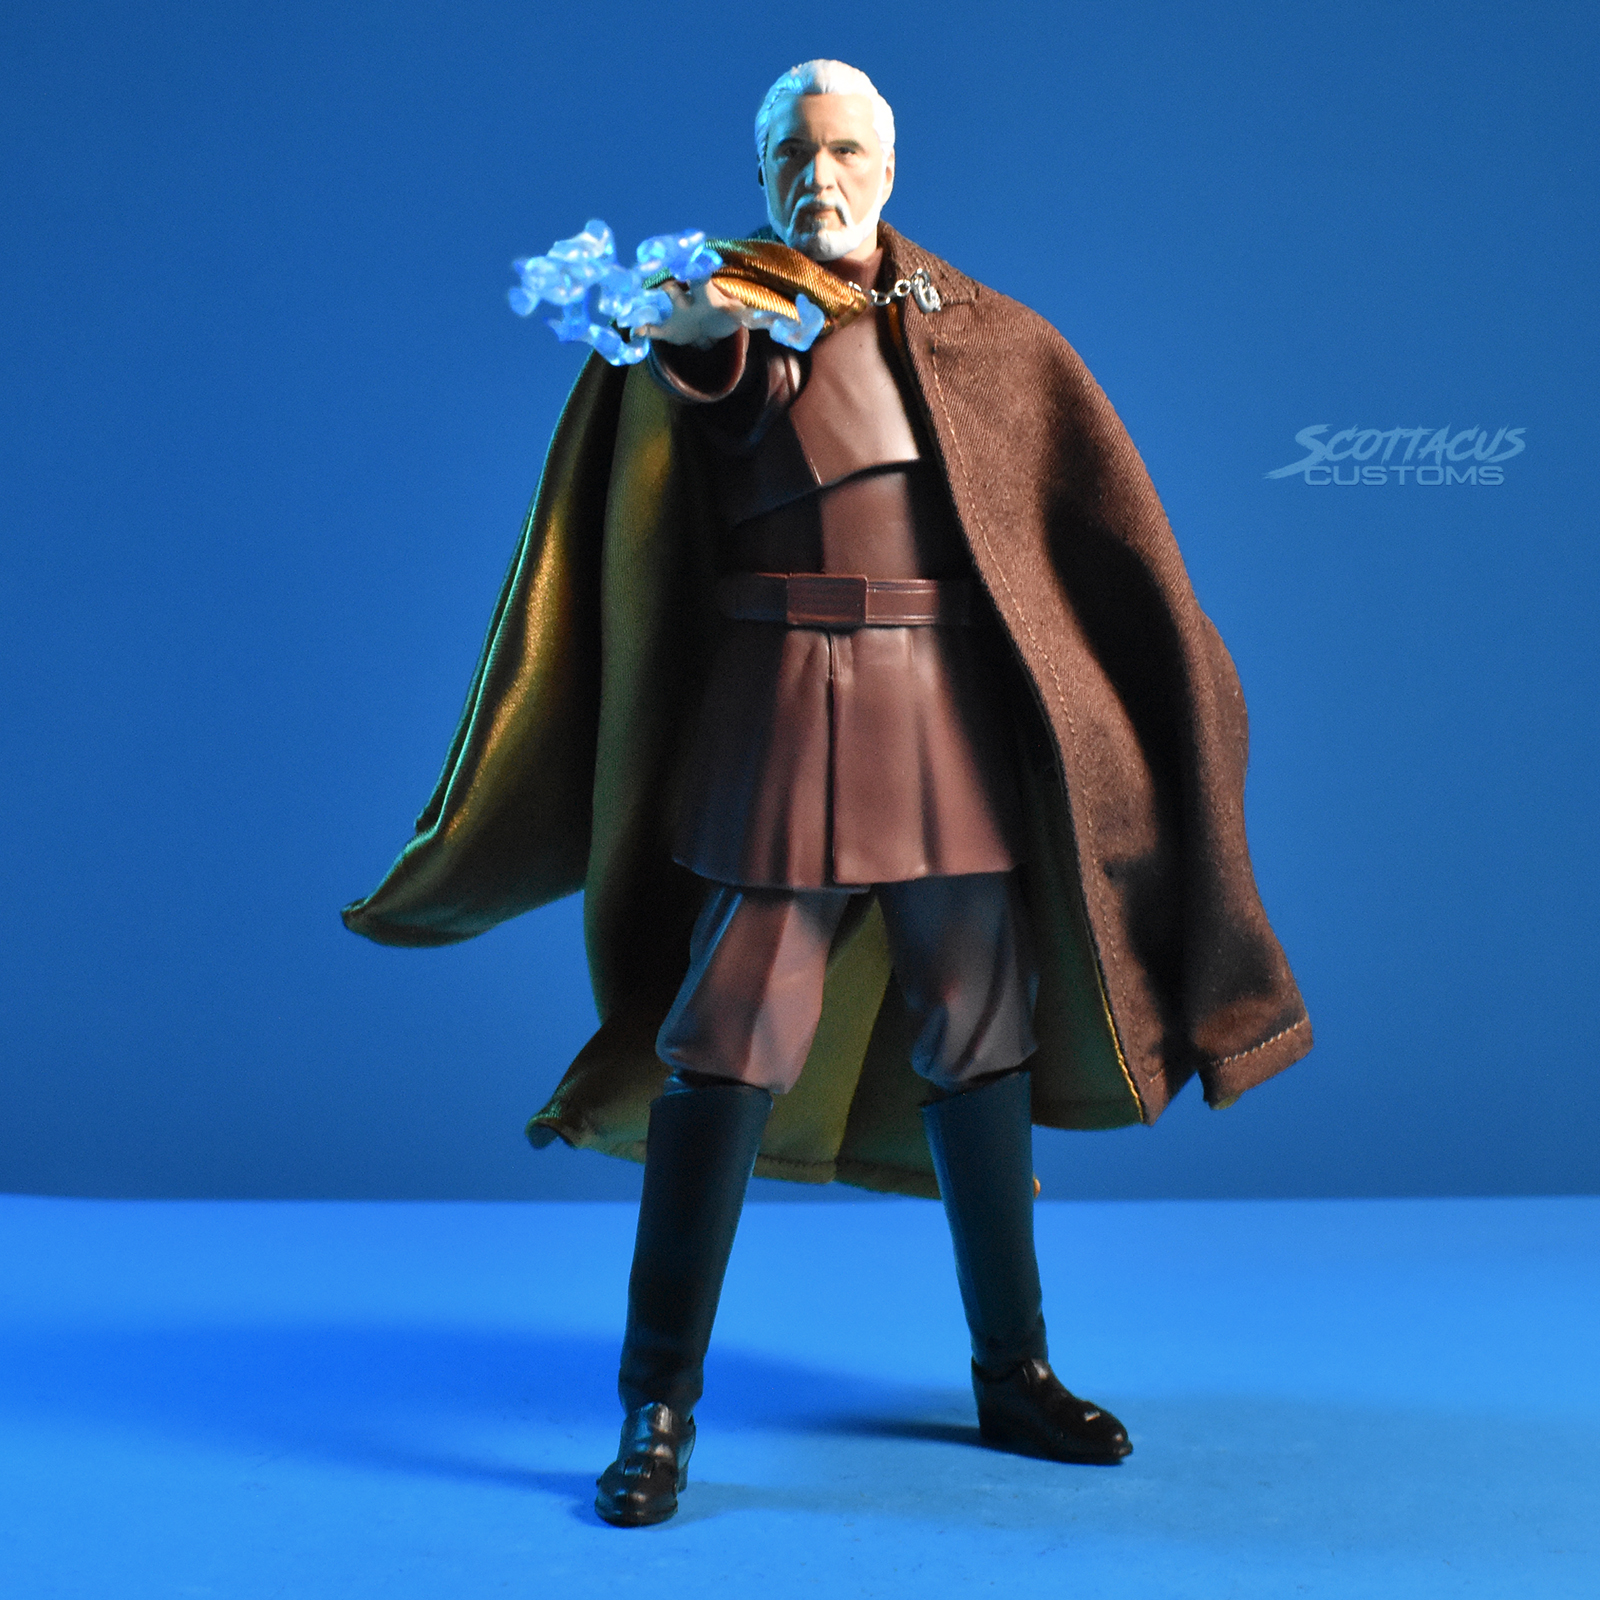 Brown Cape for SHF Star Wars Dooku No Figure